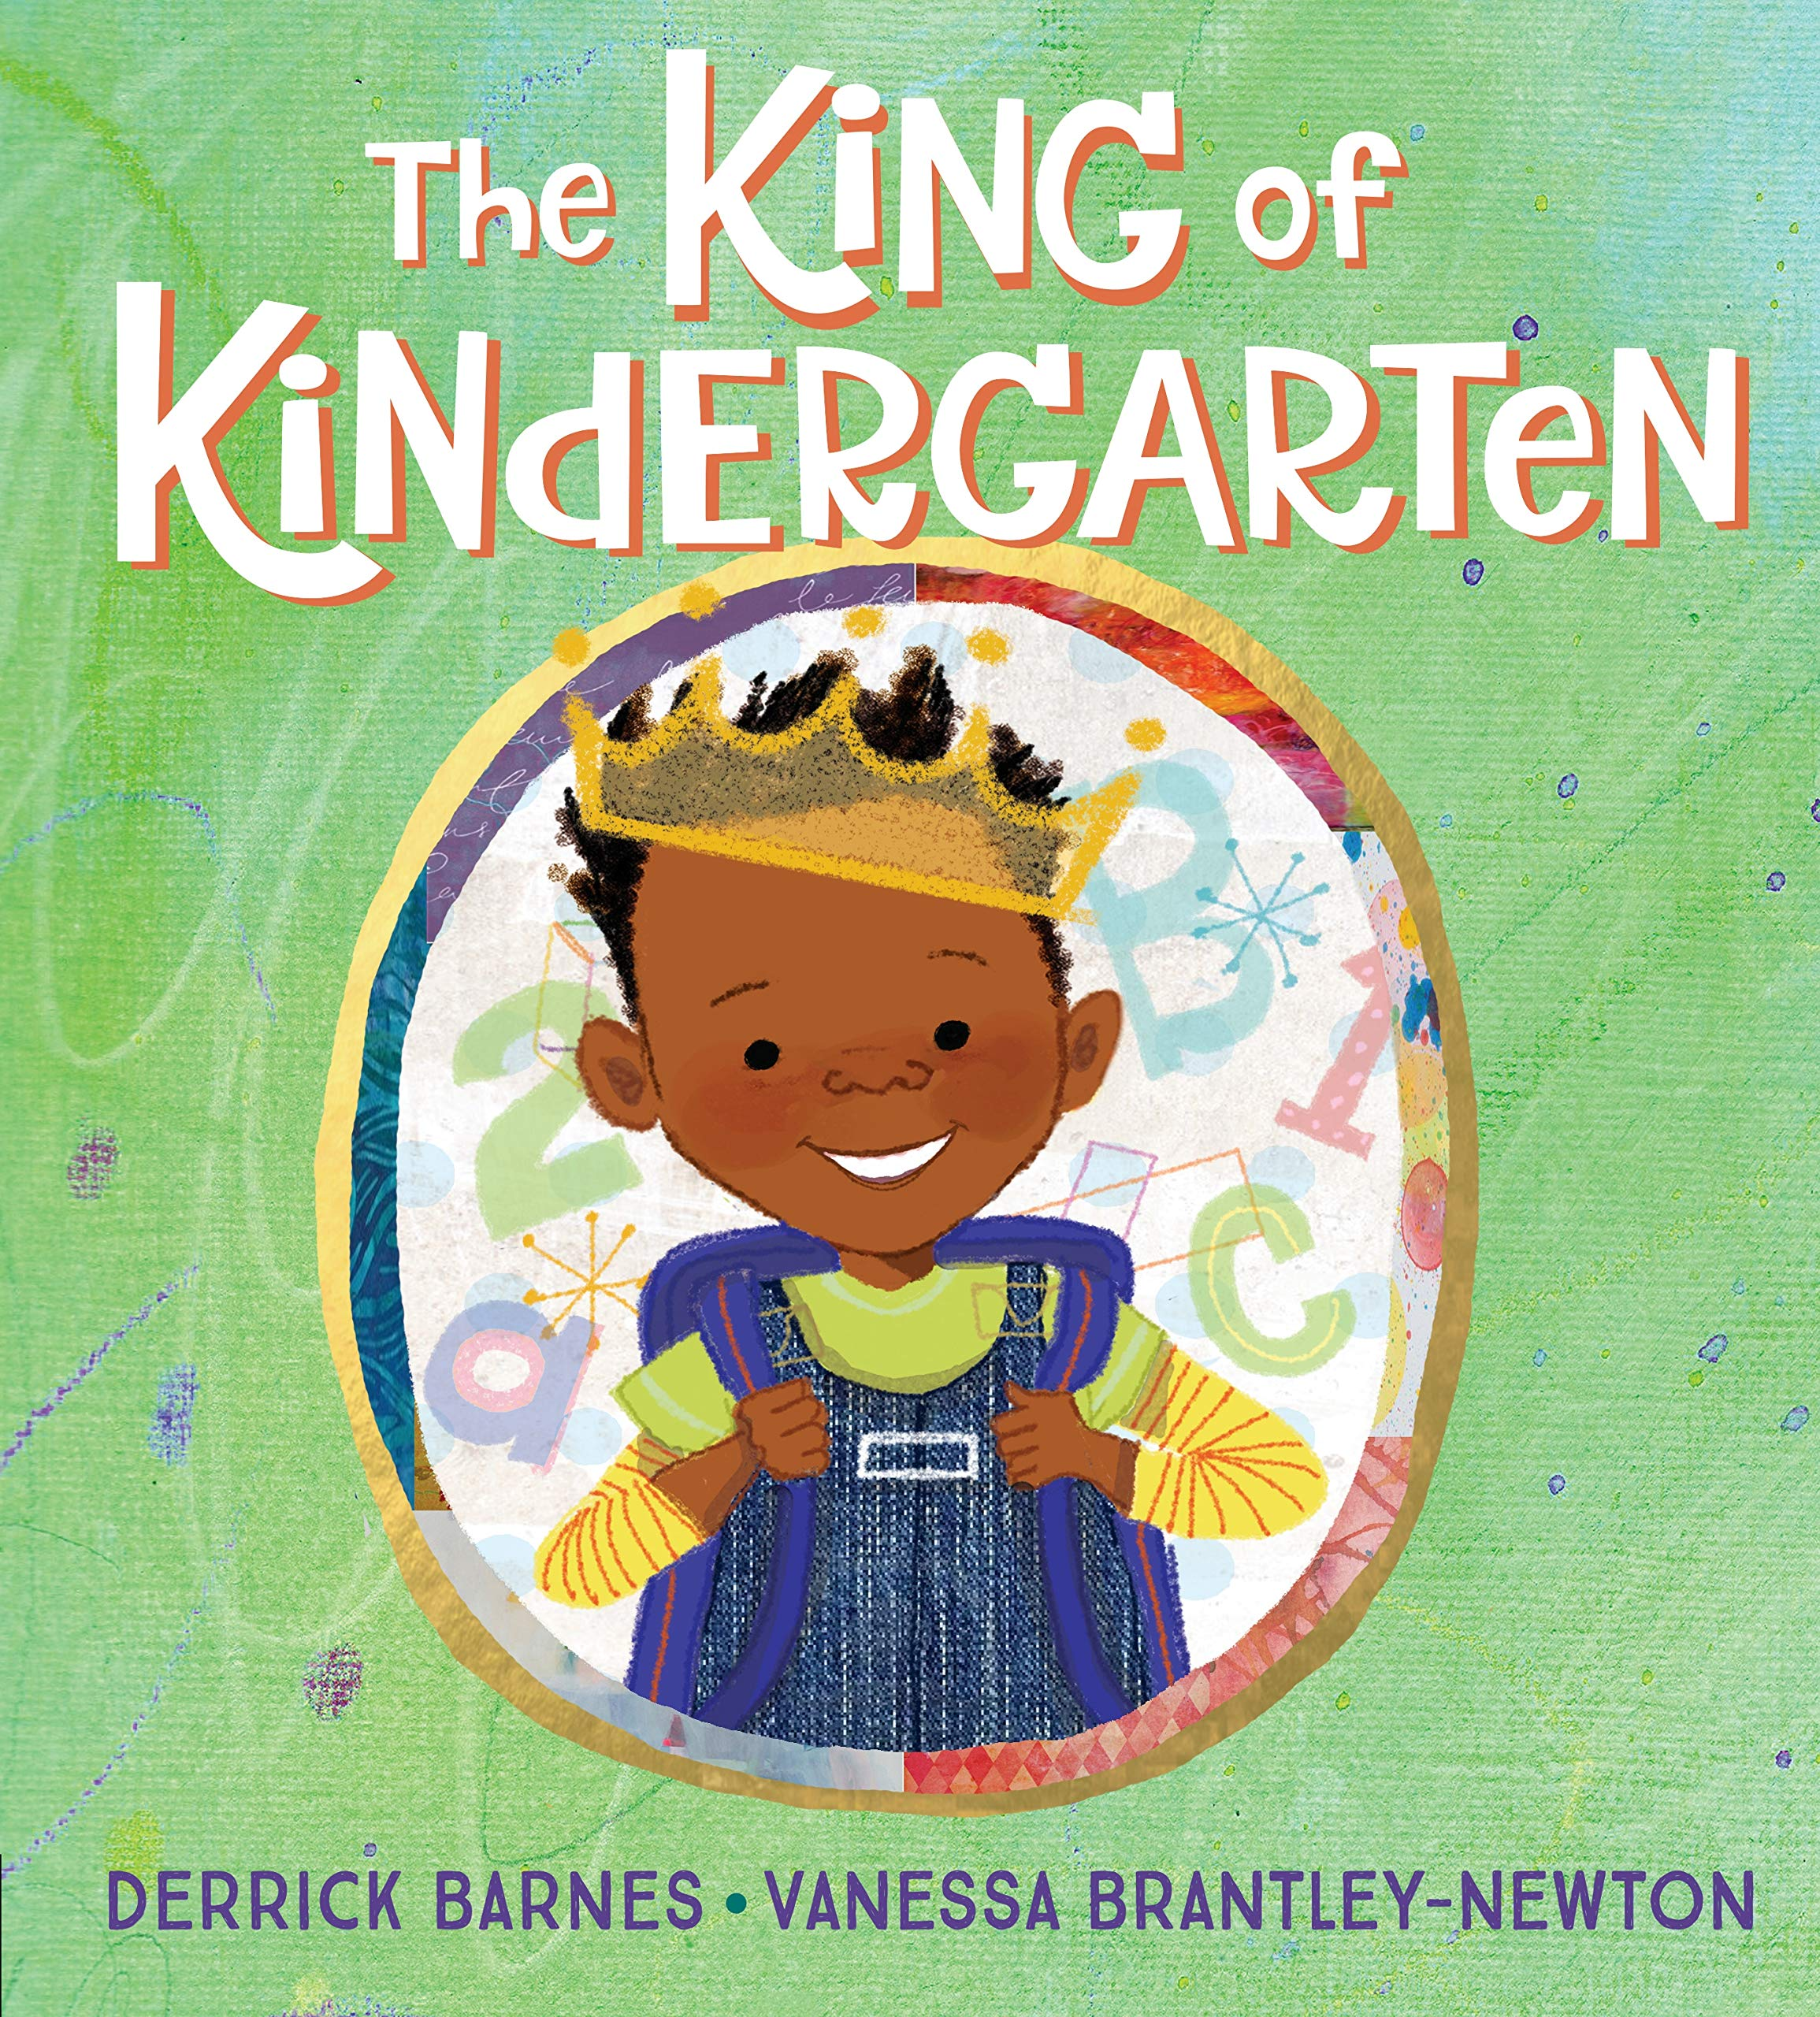 THE KING OF KINDERGARTEN Derrick Barnes